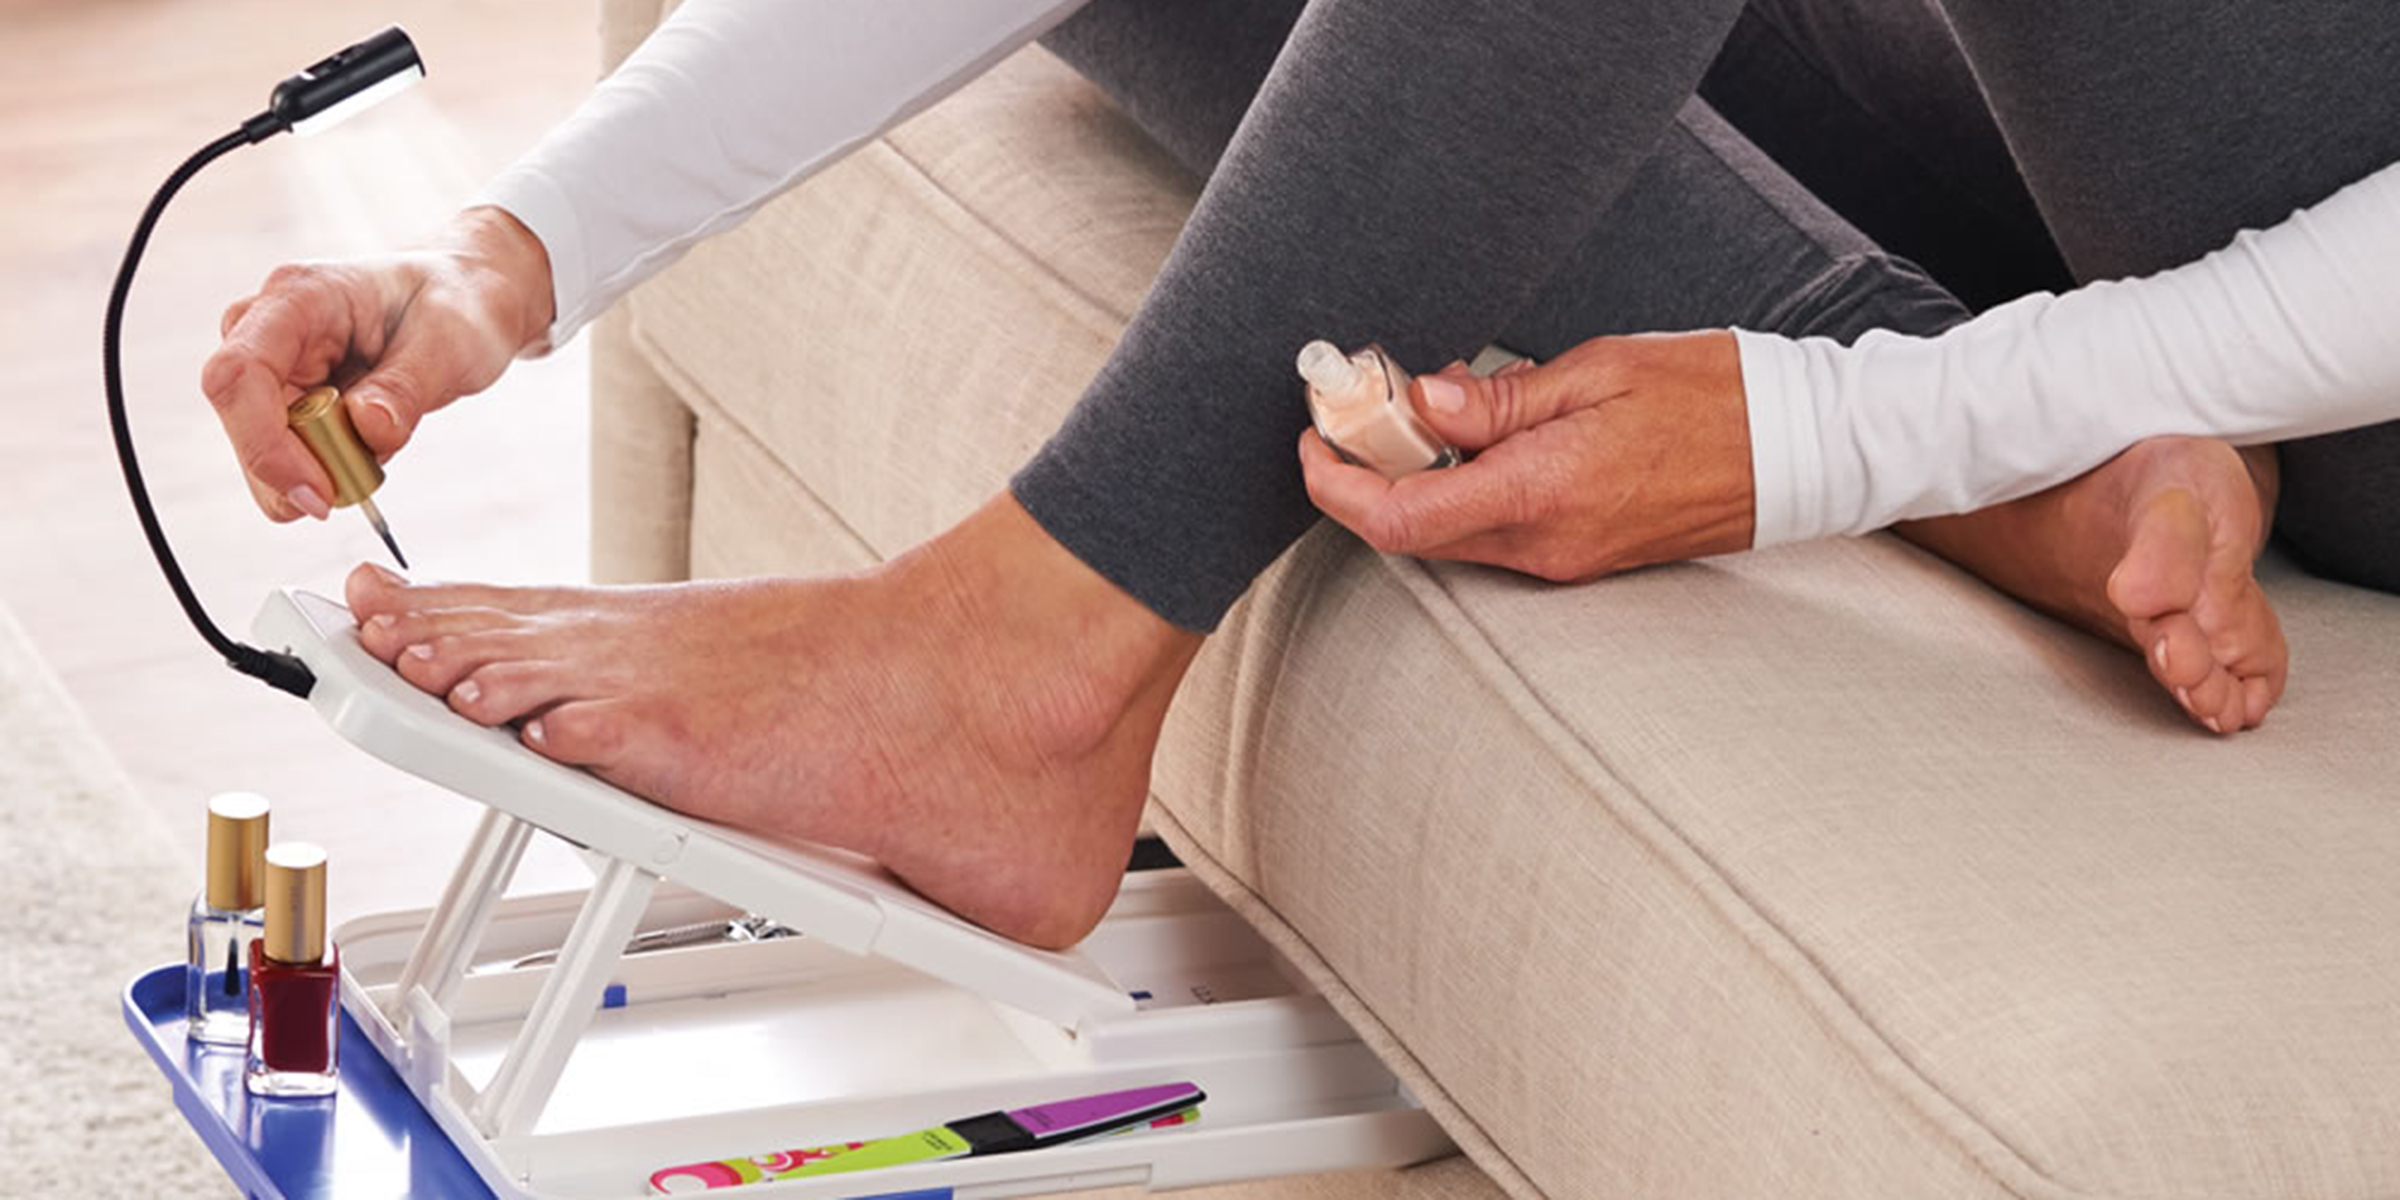 11 Pedicure Tools You Can Use At Home